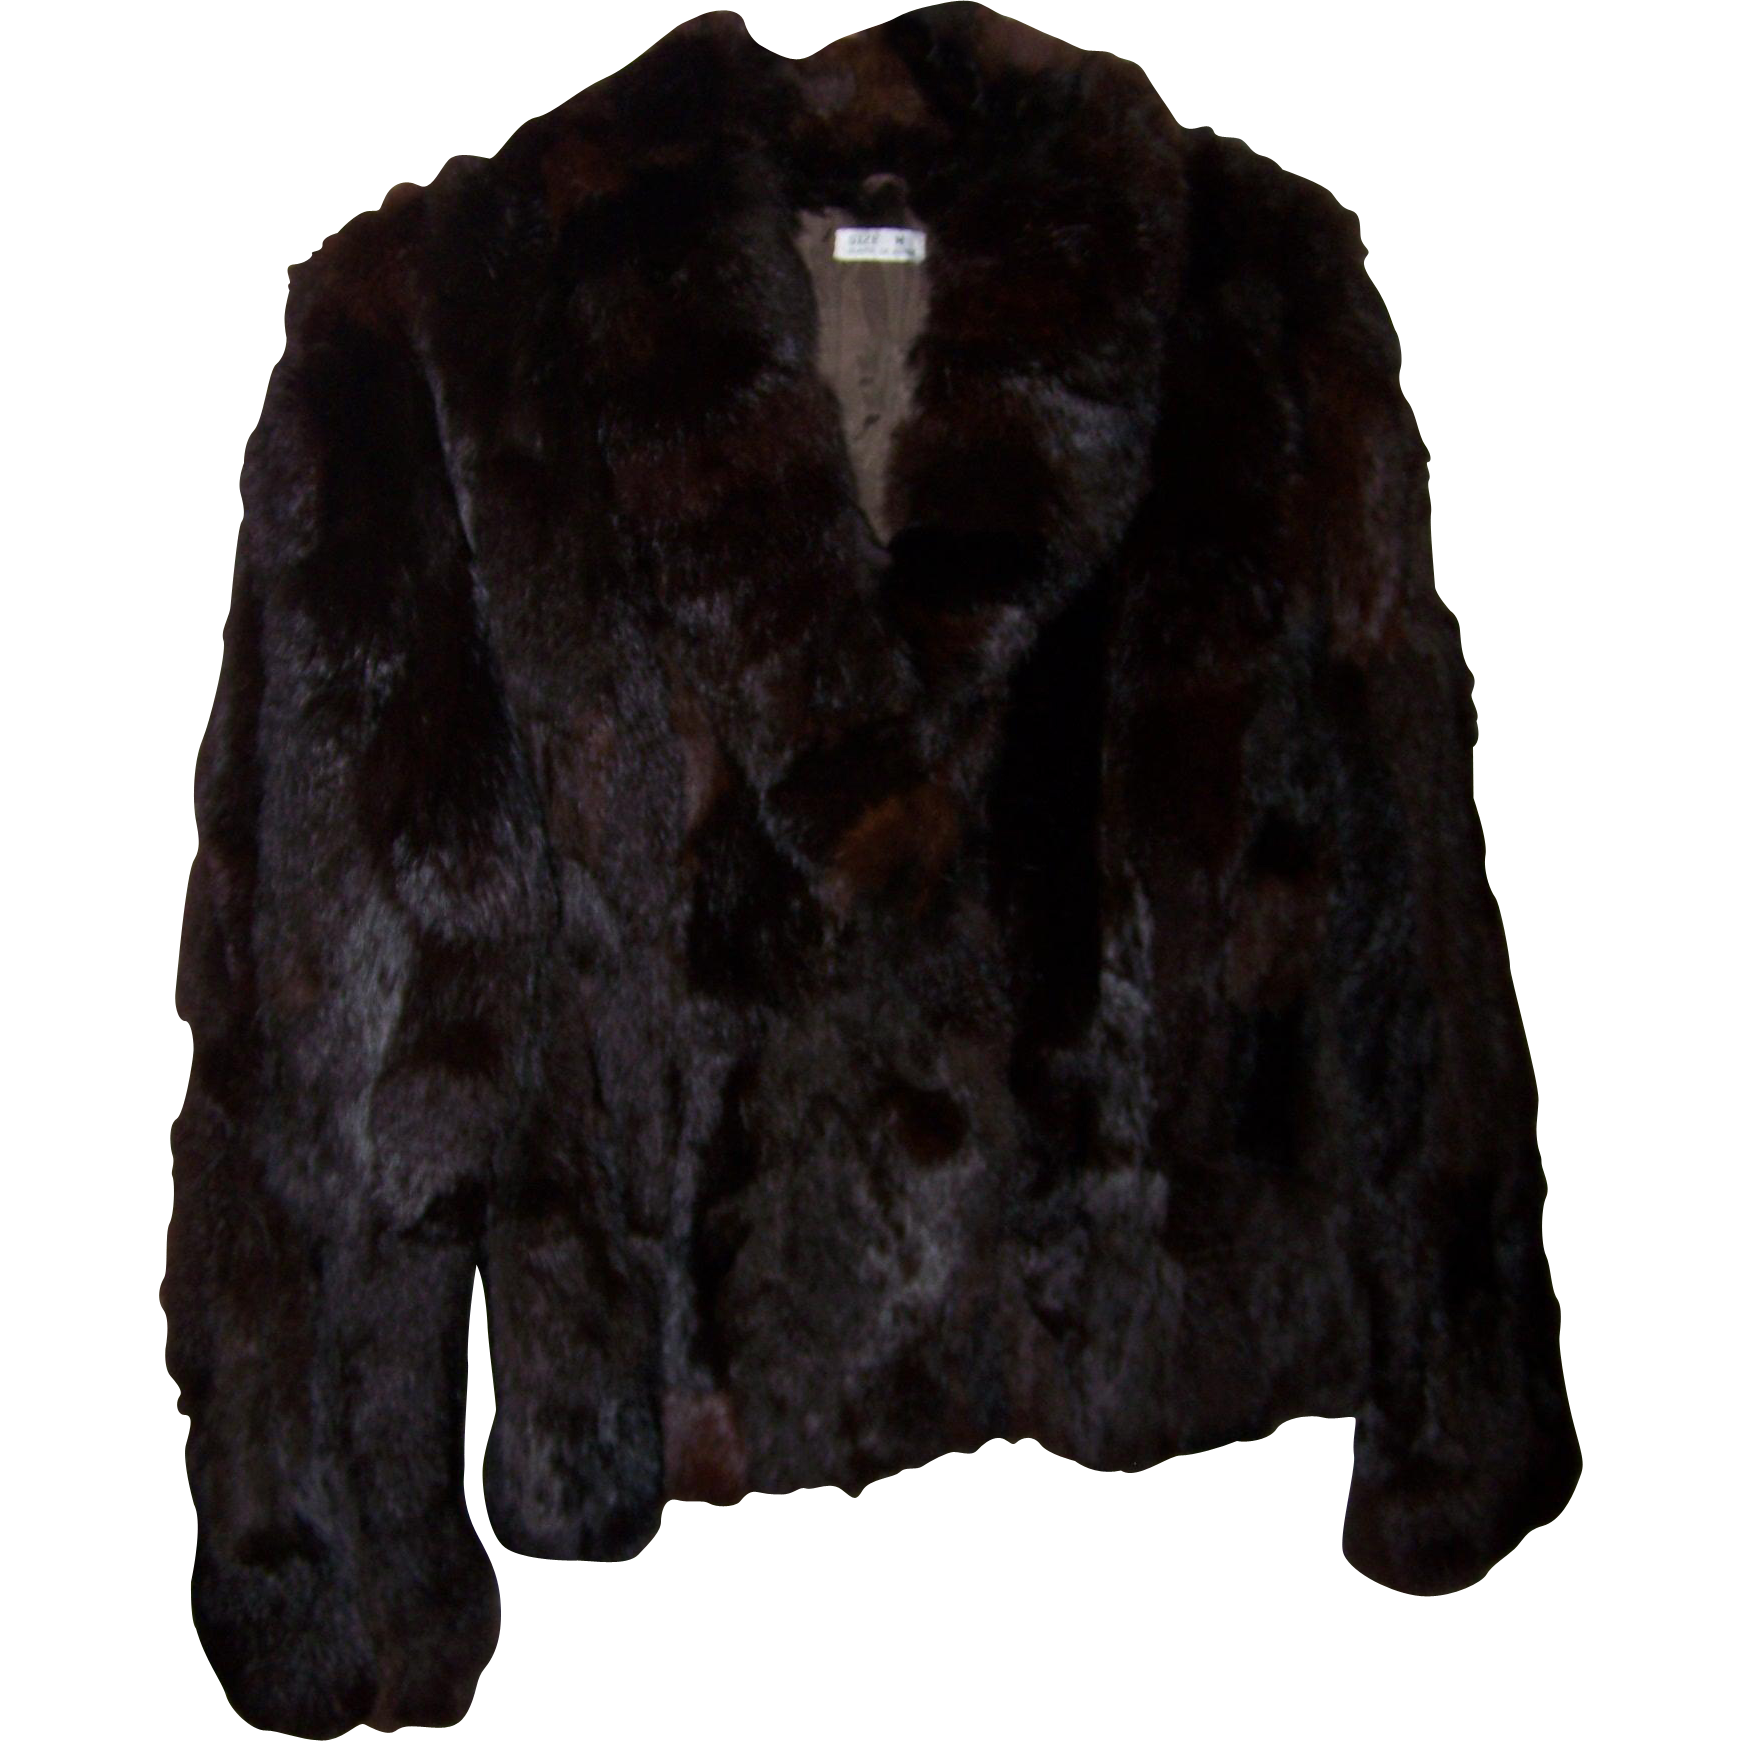 Stylish Vintage Short Rabbit Fur Jacket Made in Korea Ladies Size M